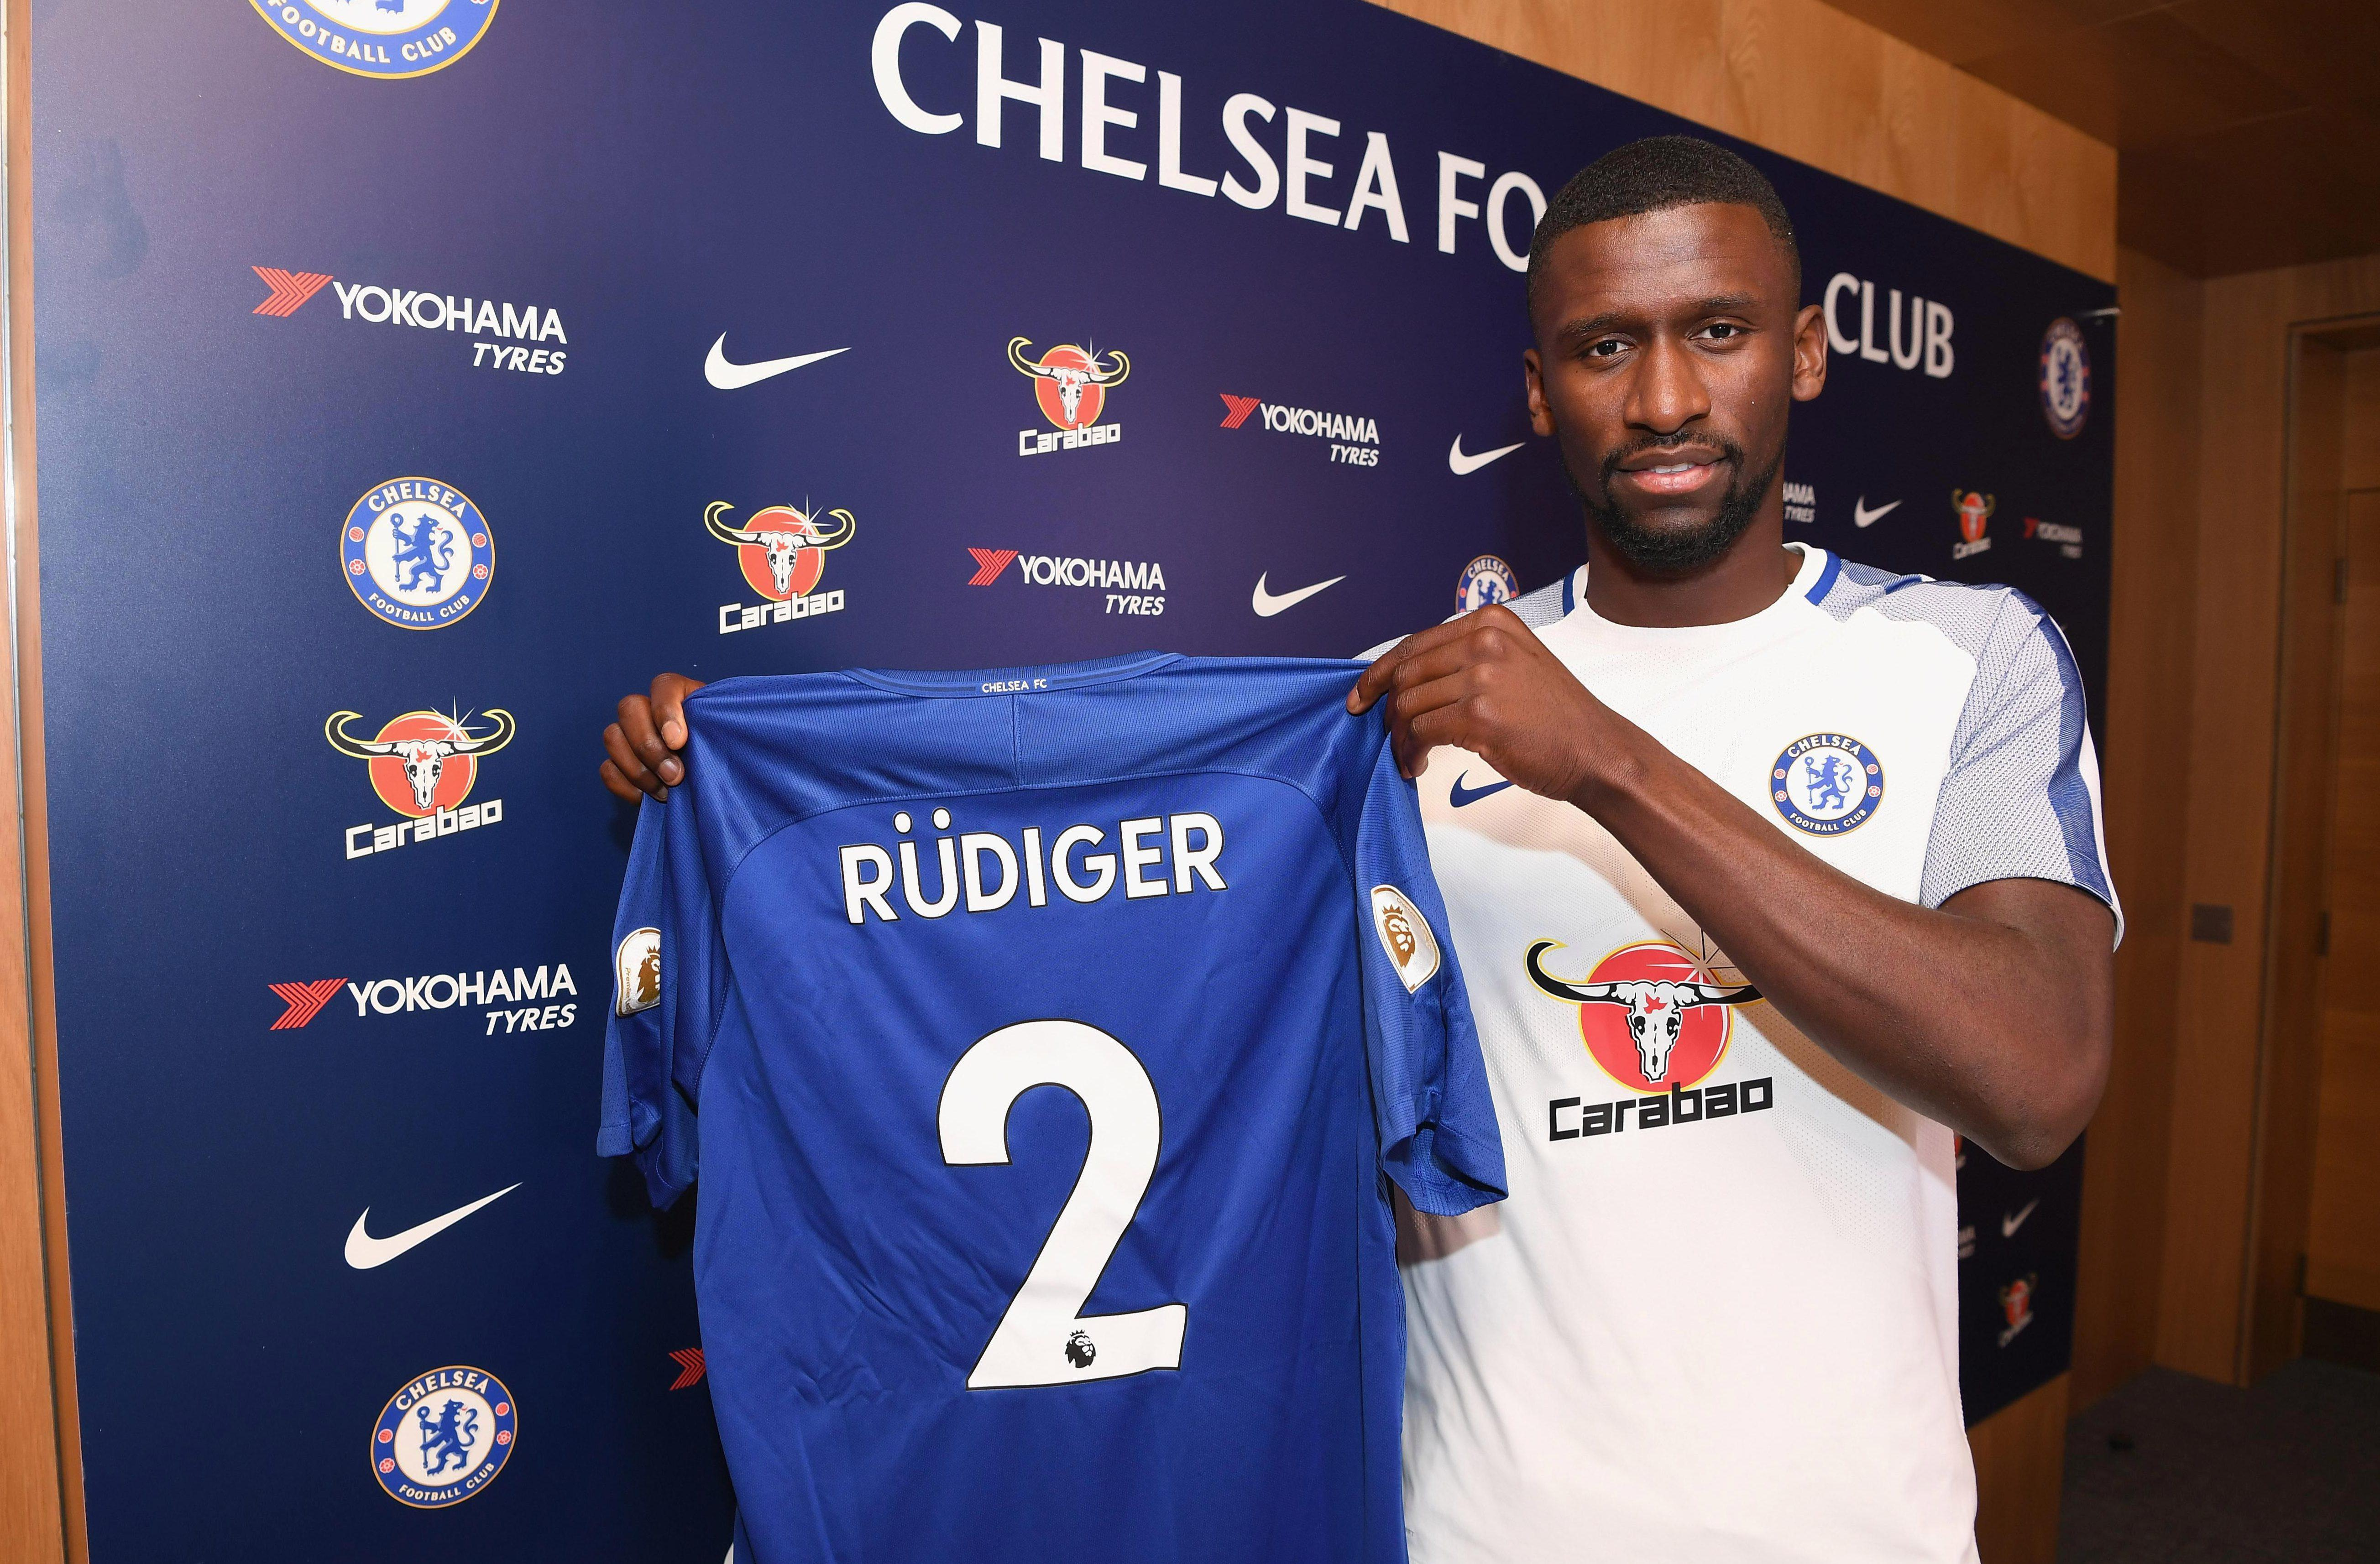 Antonio Rudiger joined Chelsea from Roma